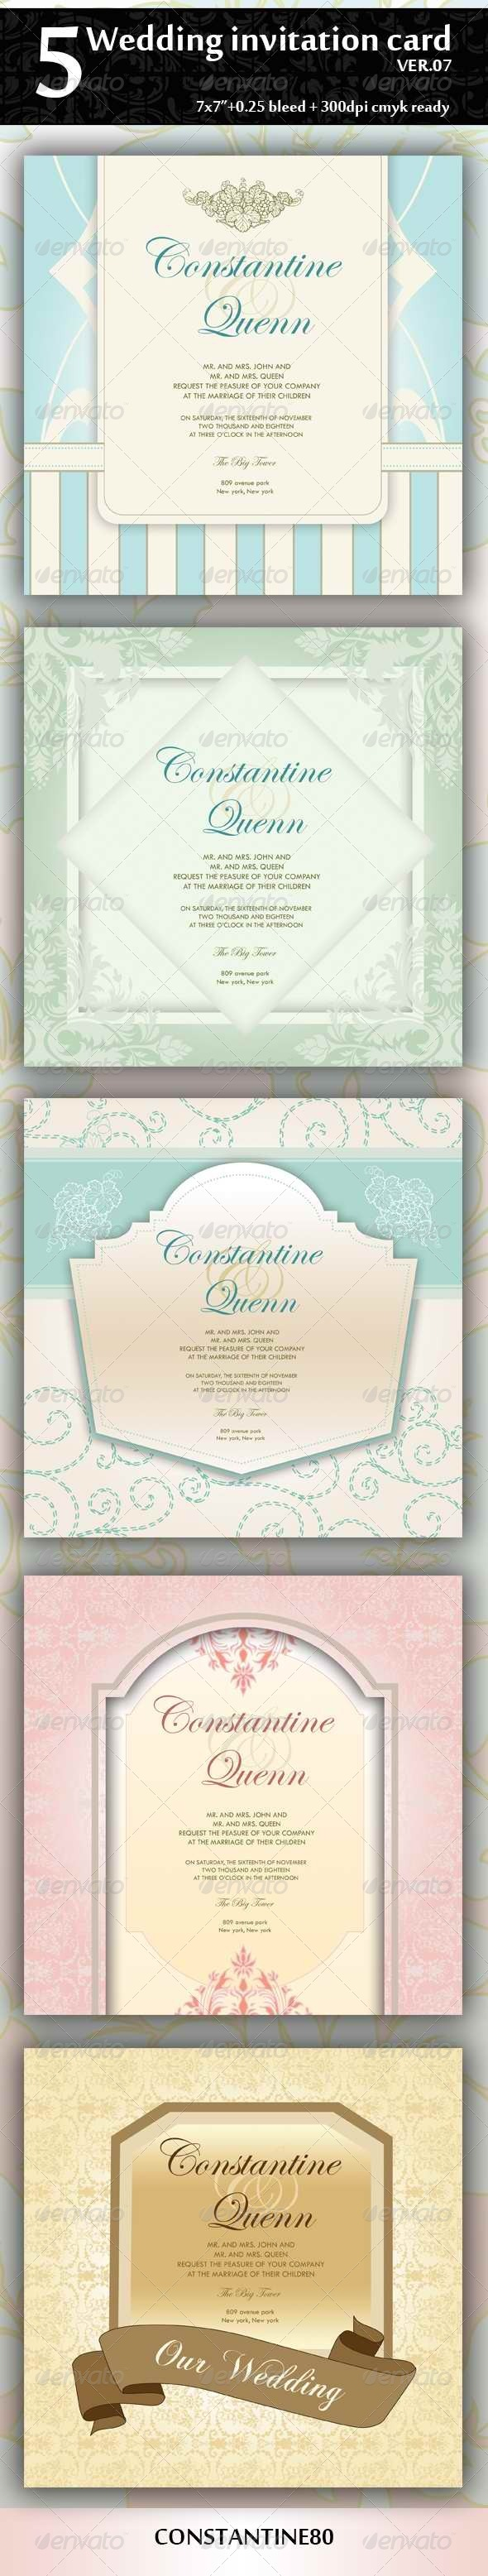 5 Wedding Invitation 7x7 ver07 - Weddings Cards & Invites